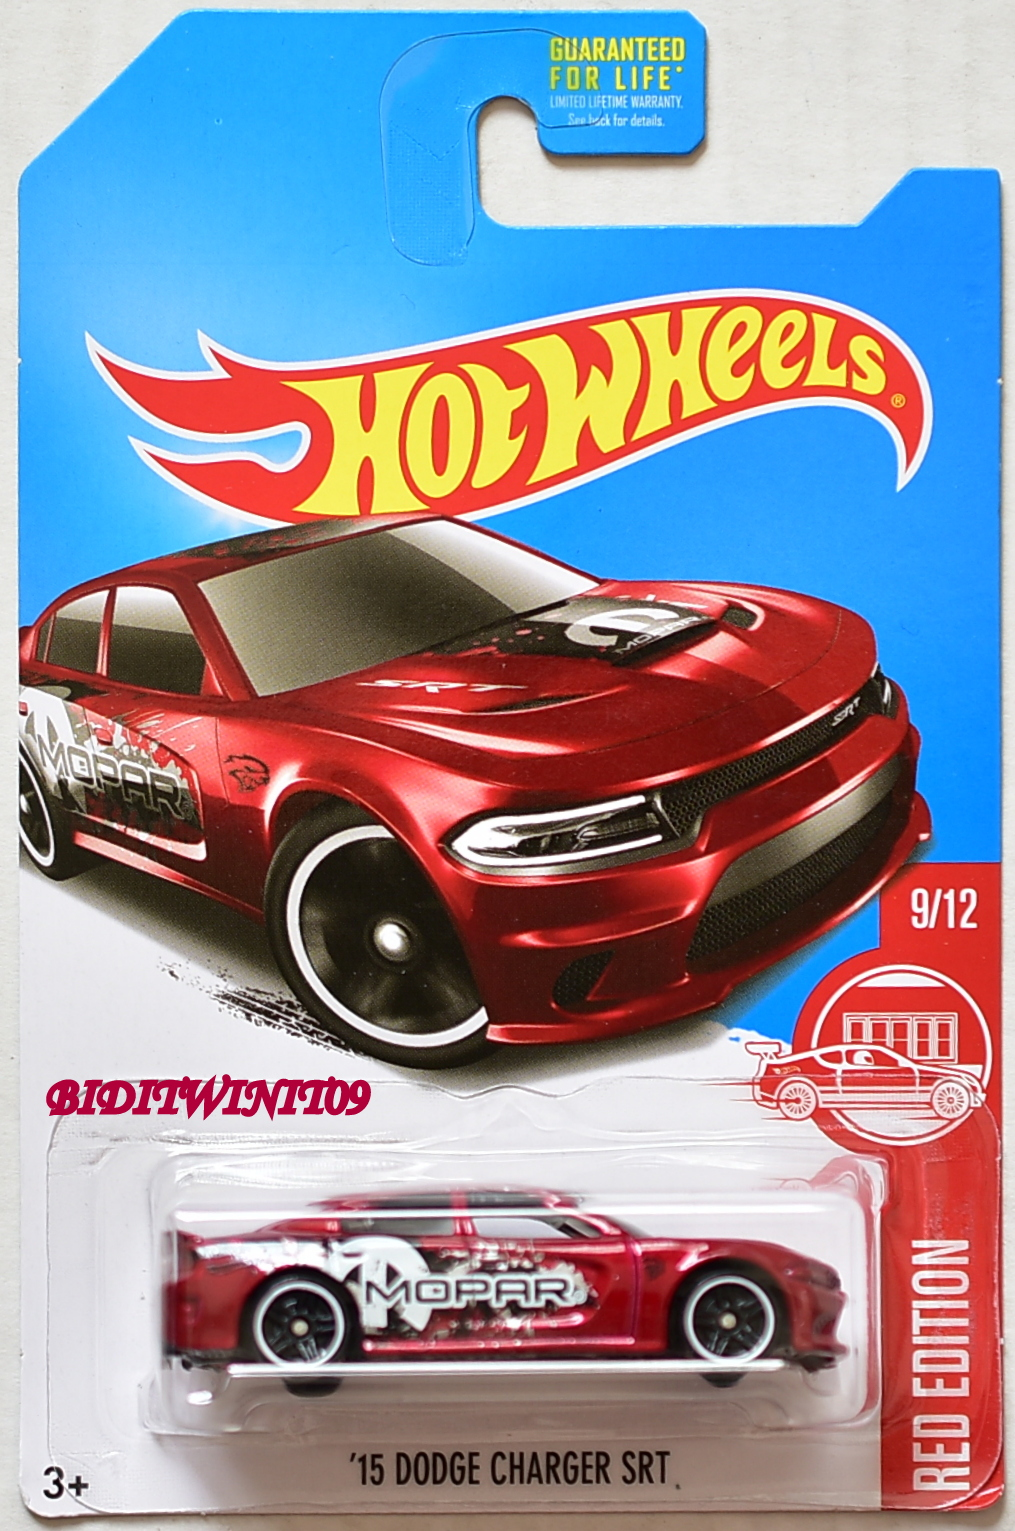 HOT WHEELS 2017 RED EDITION '15 DODGE CHARGER SRT TARGET EXCLUSIVE